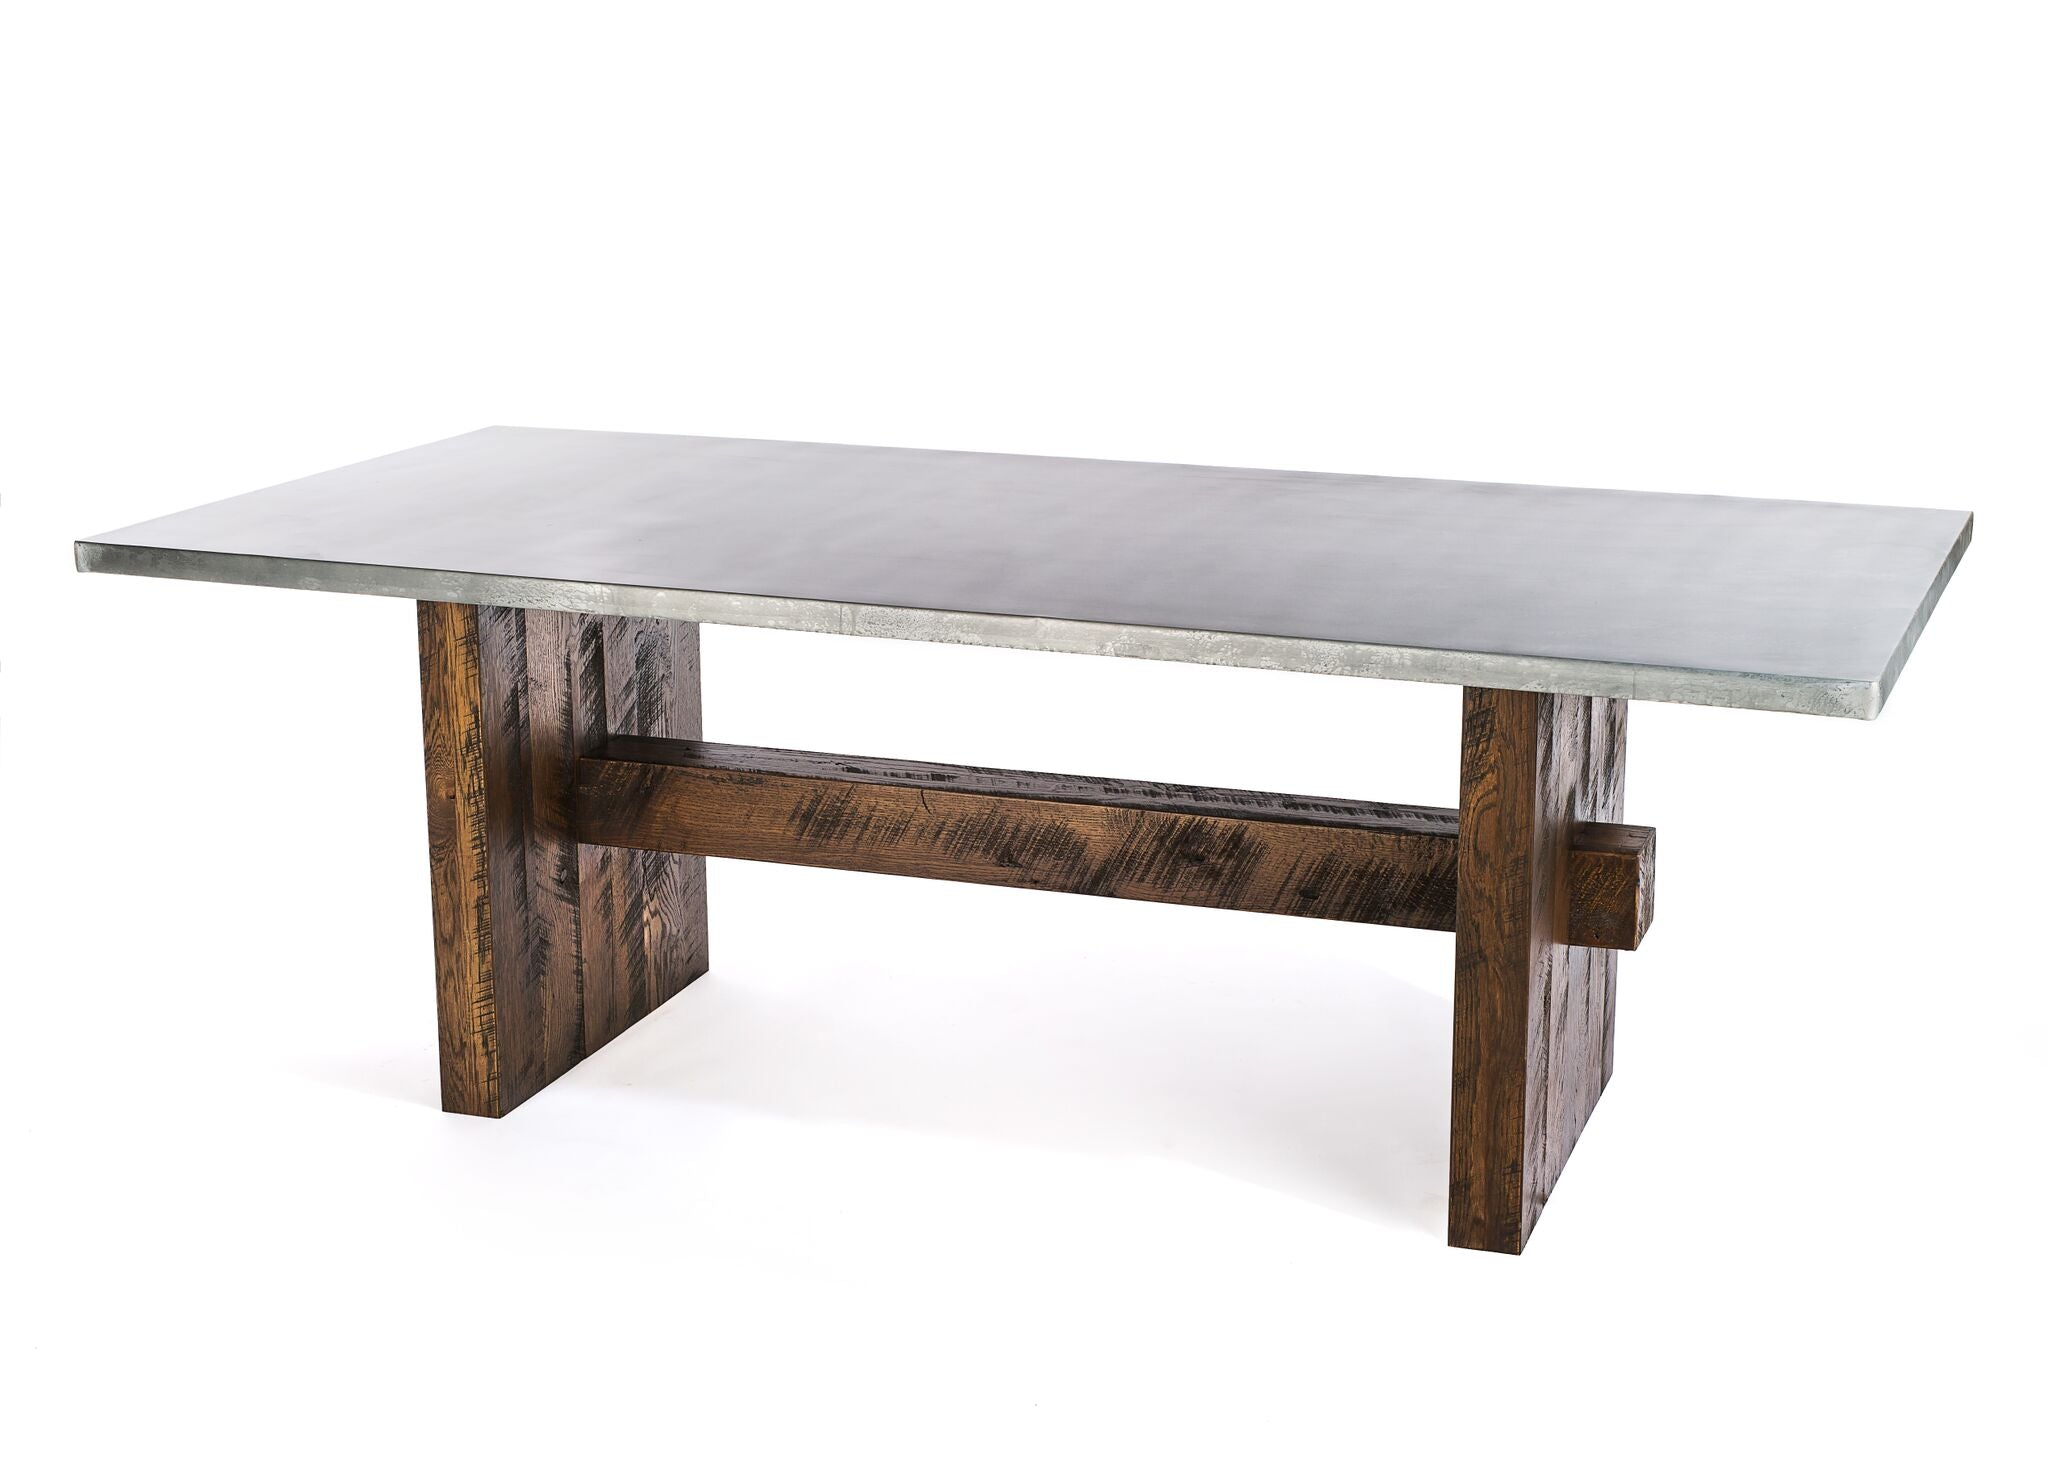 "Zinc Rectangular Table | Redford Trestle Table | CLASSIC | Natural Reclaimed Oak | CUSTOM SIZE 60""L 30""W 29""H 